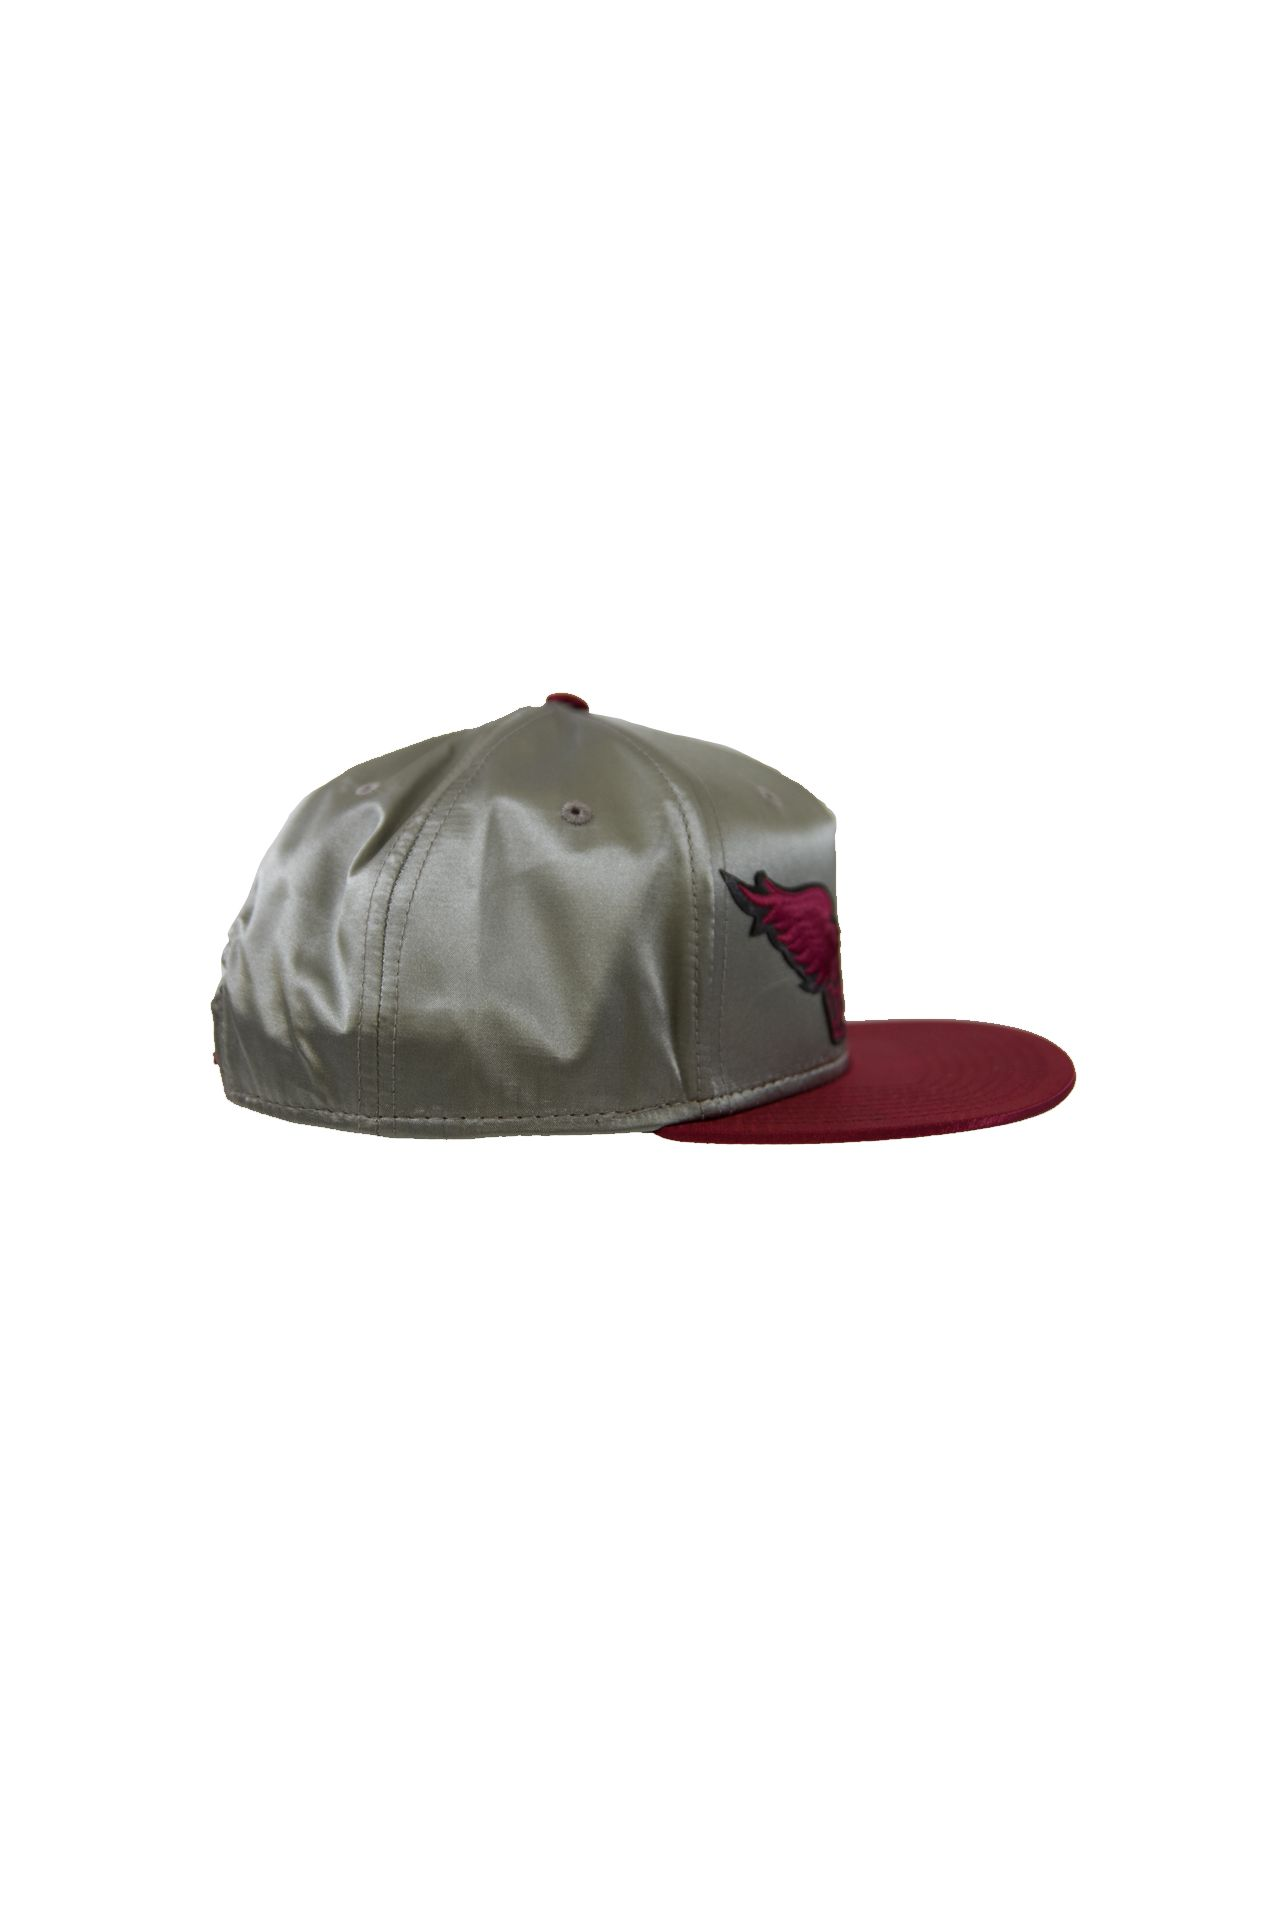 SILVER AND WINE SATIN CAP